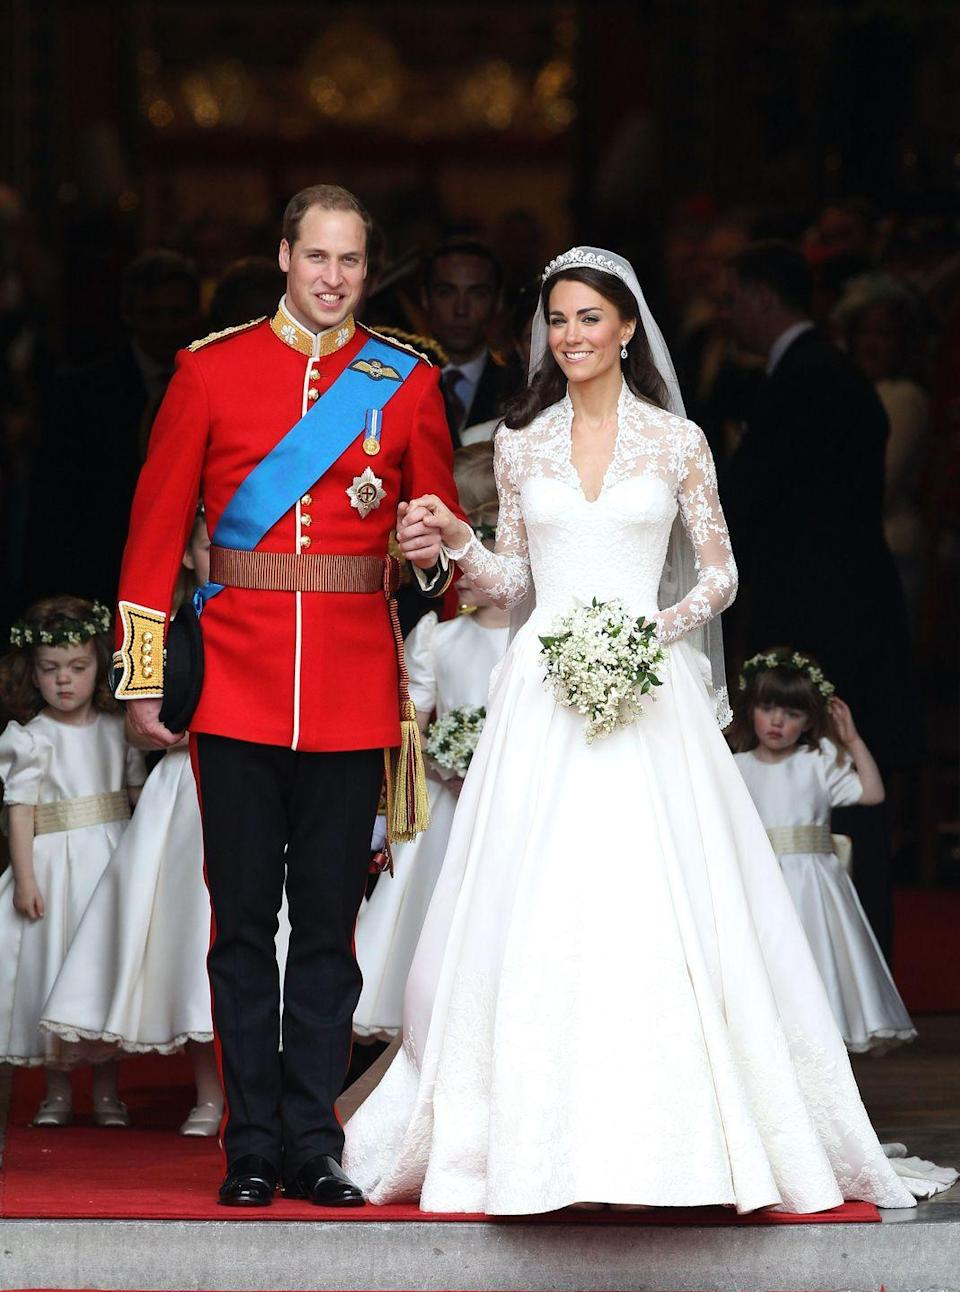 """<p>In keeping with royal tradition, after their nuptials, the bride and groom both receive a new name after being granted new titles by the Queen. For instance, on William's wedding day, he received the title of Duke of Cambridge and no longer uses his father's surname, Wales.</p><p><strong>RELATED: </strong><a href=""""https://www.goodhousekeeping.com/life/entertainment/g3513/royal-wedding-facts/"""" rel=""""nofollow noopener"""" target=""""_blank"""" data-ylk=""""slk:40 Facts About Kate and William's Royal Wedding"""" class=""""link rapid-noclick-resp"""">40 Facts About Kate and William's Royal Wedding</a></p>"""